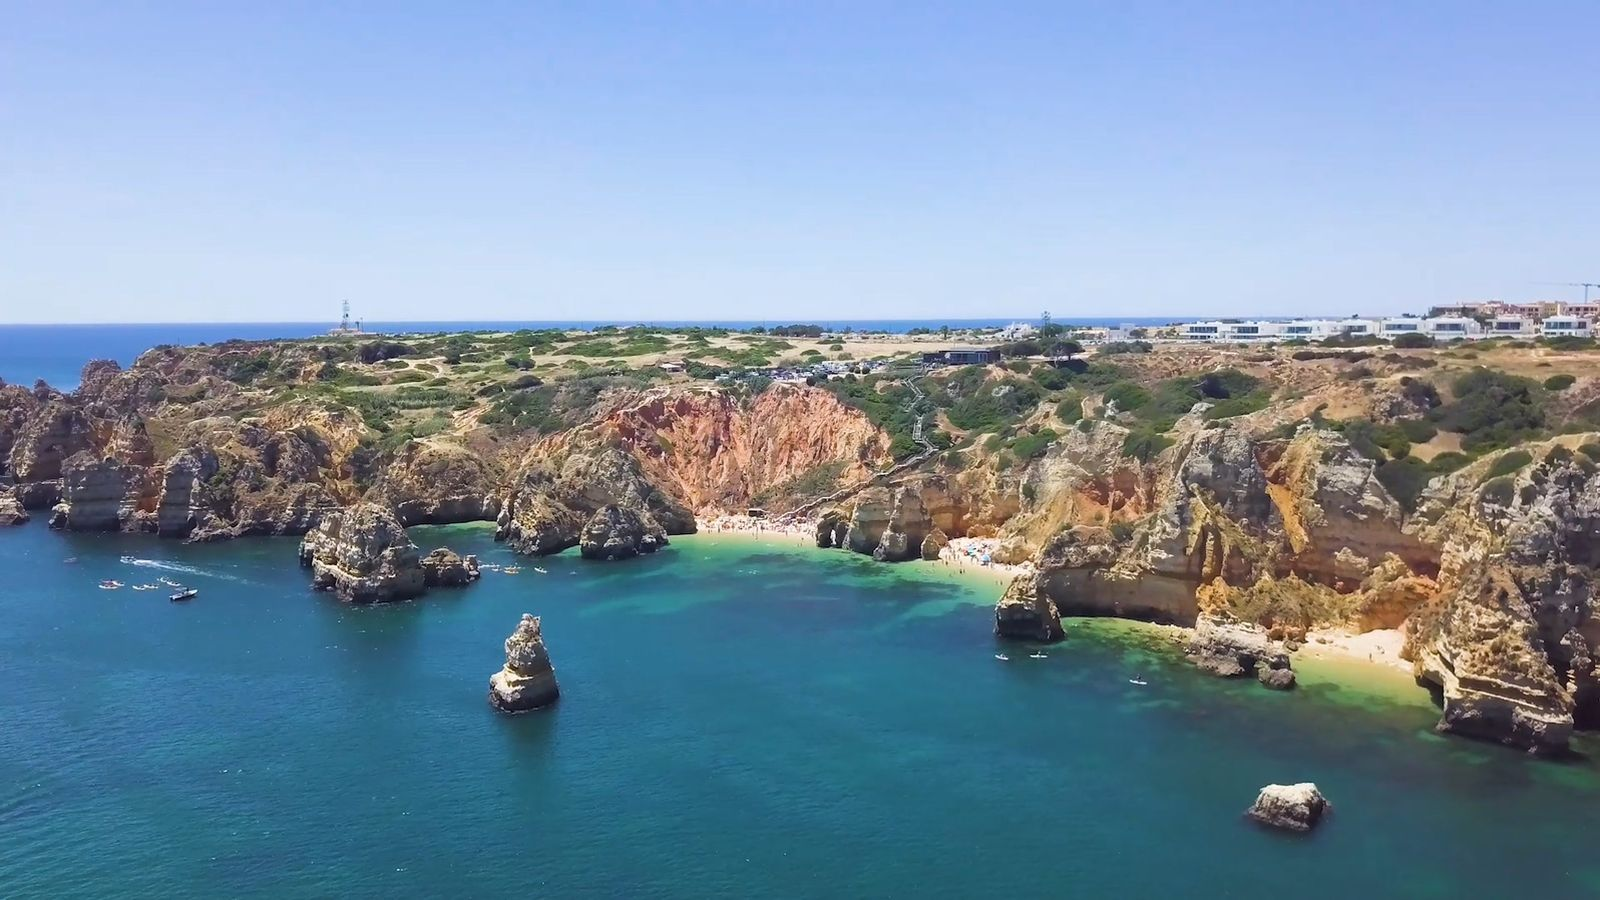 Algarve coastline from the air